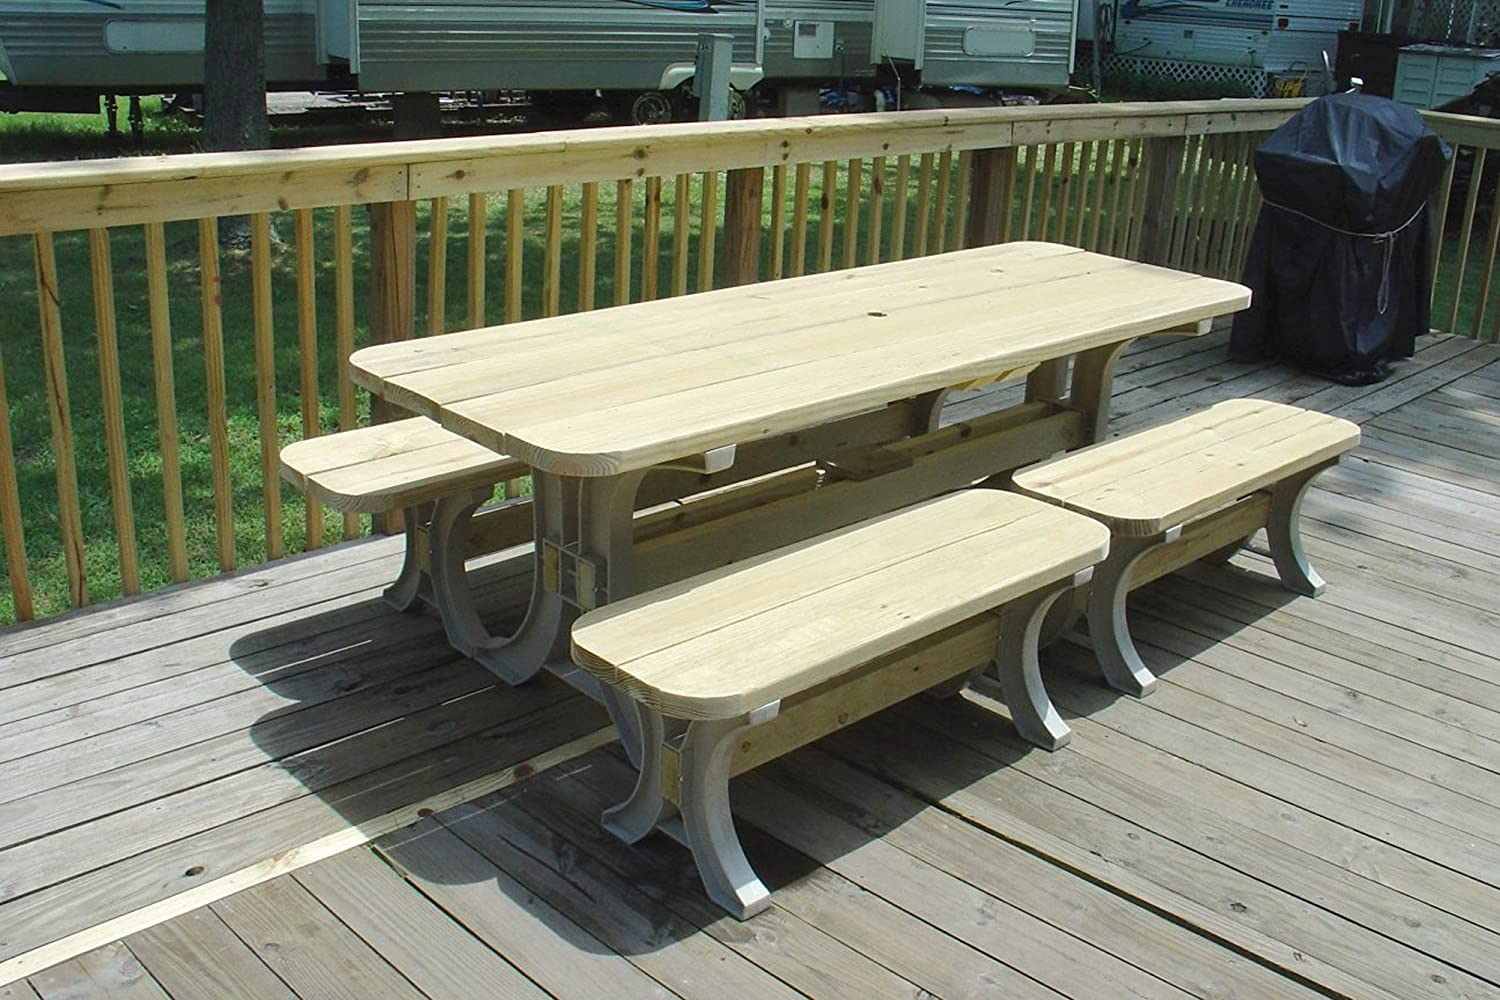 Amazoncom Hopkins ONLMI Xbasics Picnic Table Kit Sand - Motorized picnic table for sale